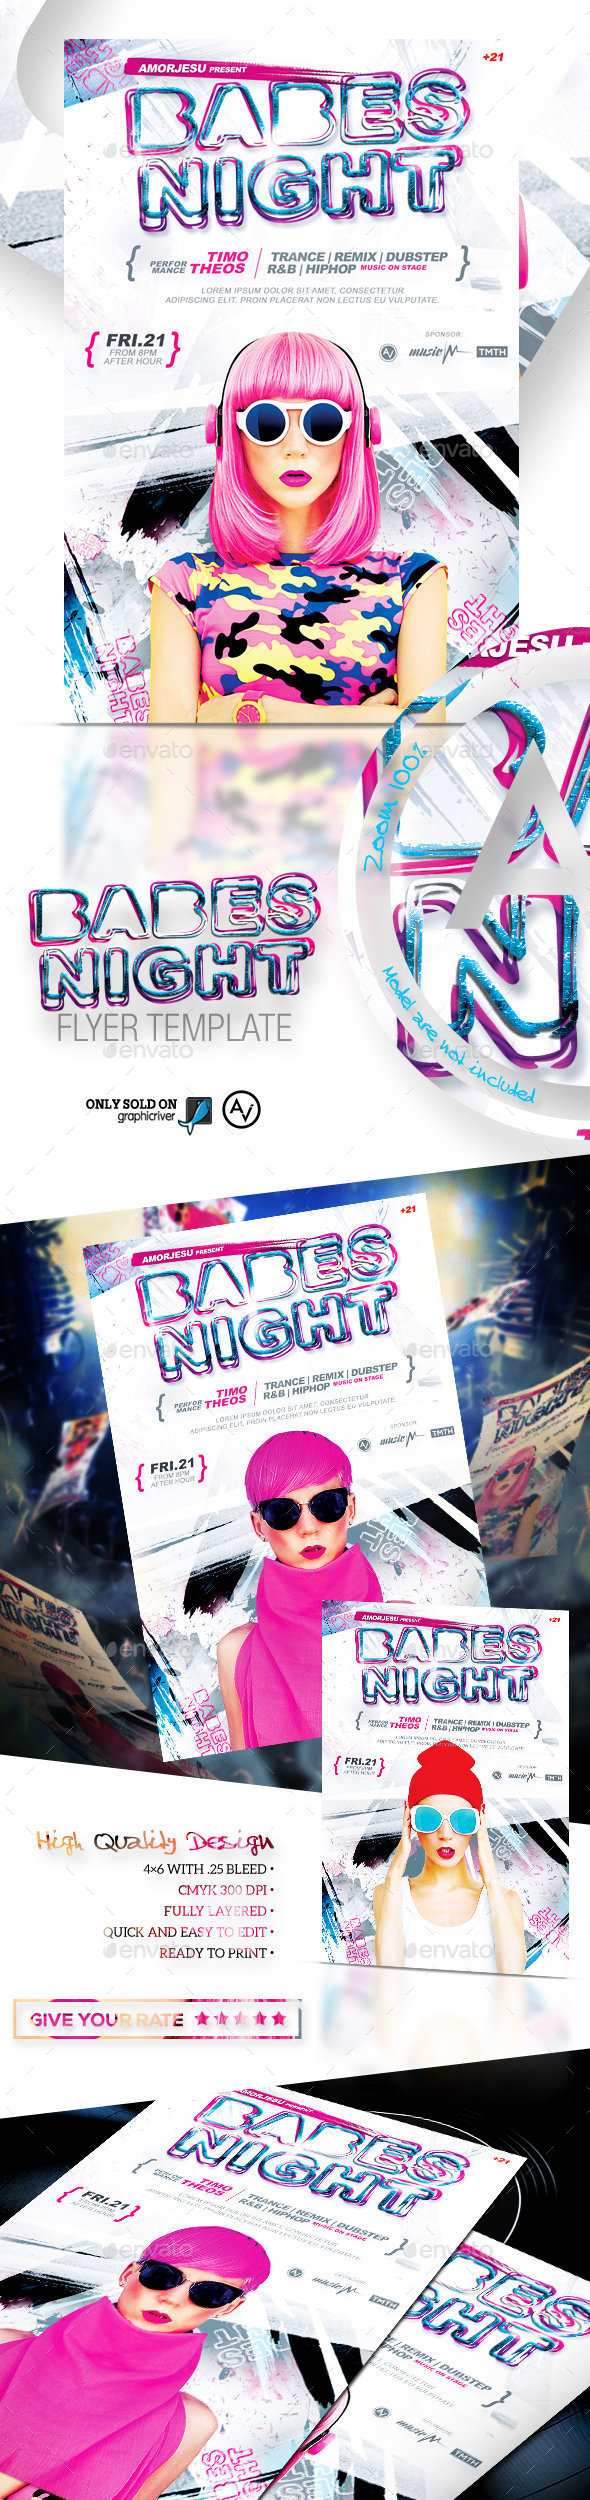 Babes Night Flyer Template - Clubs & Parties Events